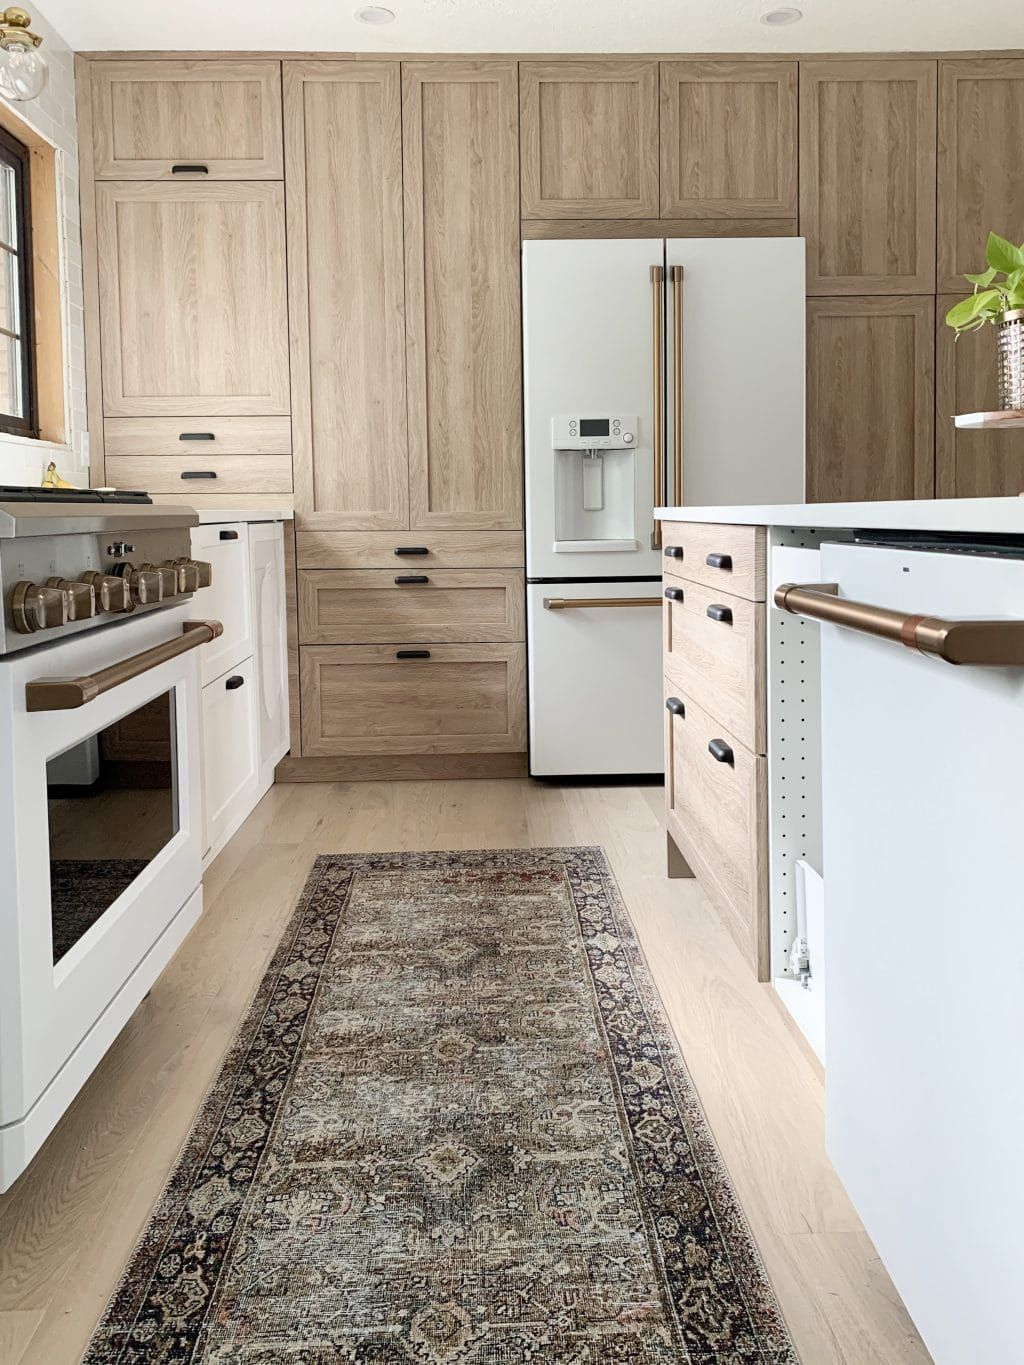 Chris Loves Julia X Semihandmade Cabinet Fronts For Ikea Kitchens Kitchen Cabinet Trends White Kitchen Appliances Kitchen Pantry Cabinets